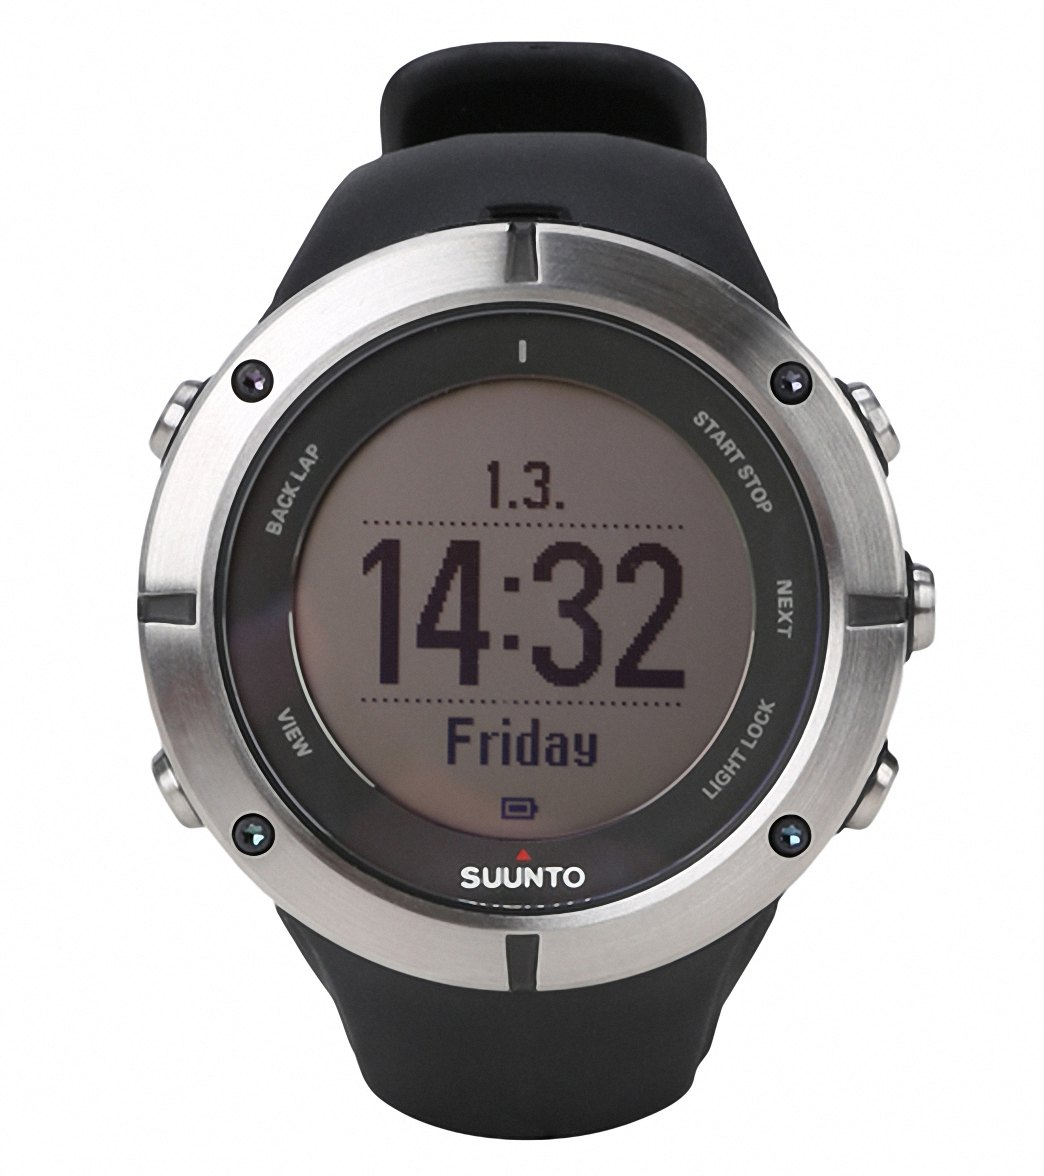 Suunto Gps Watch >> Suunto Ambit 2 Sapphire Hr Multisport Gps Watch With Heart Rate